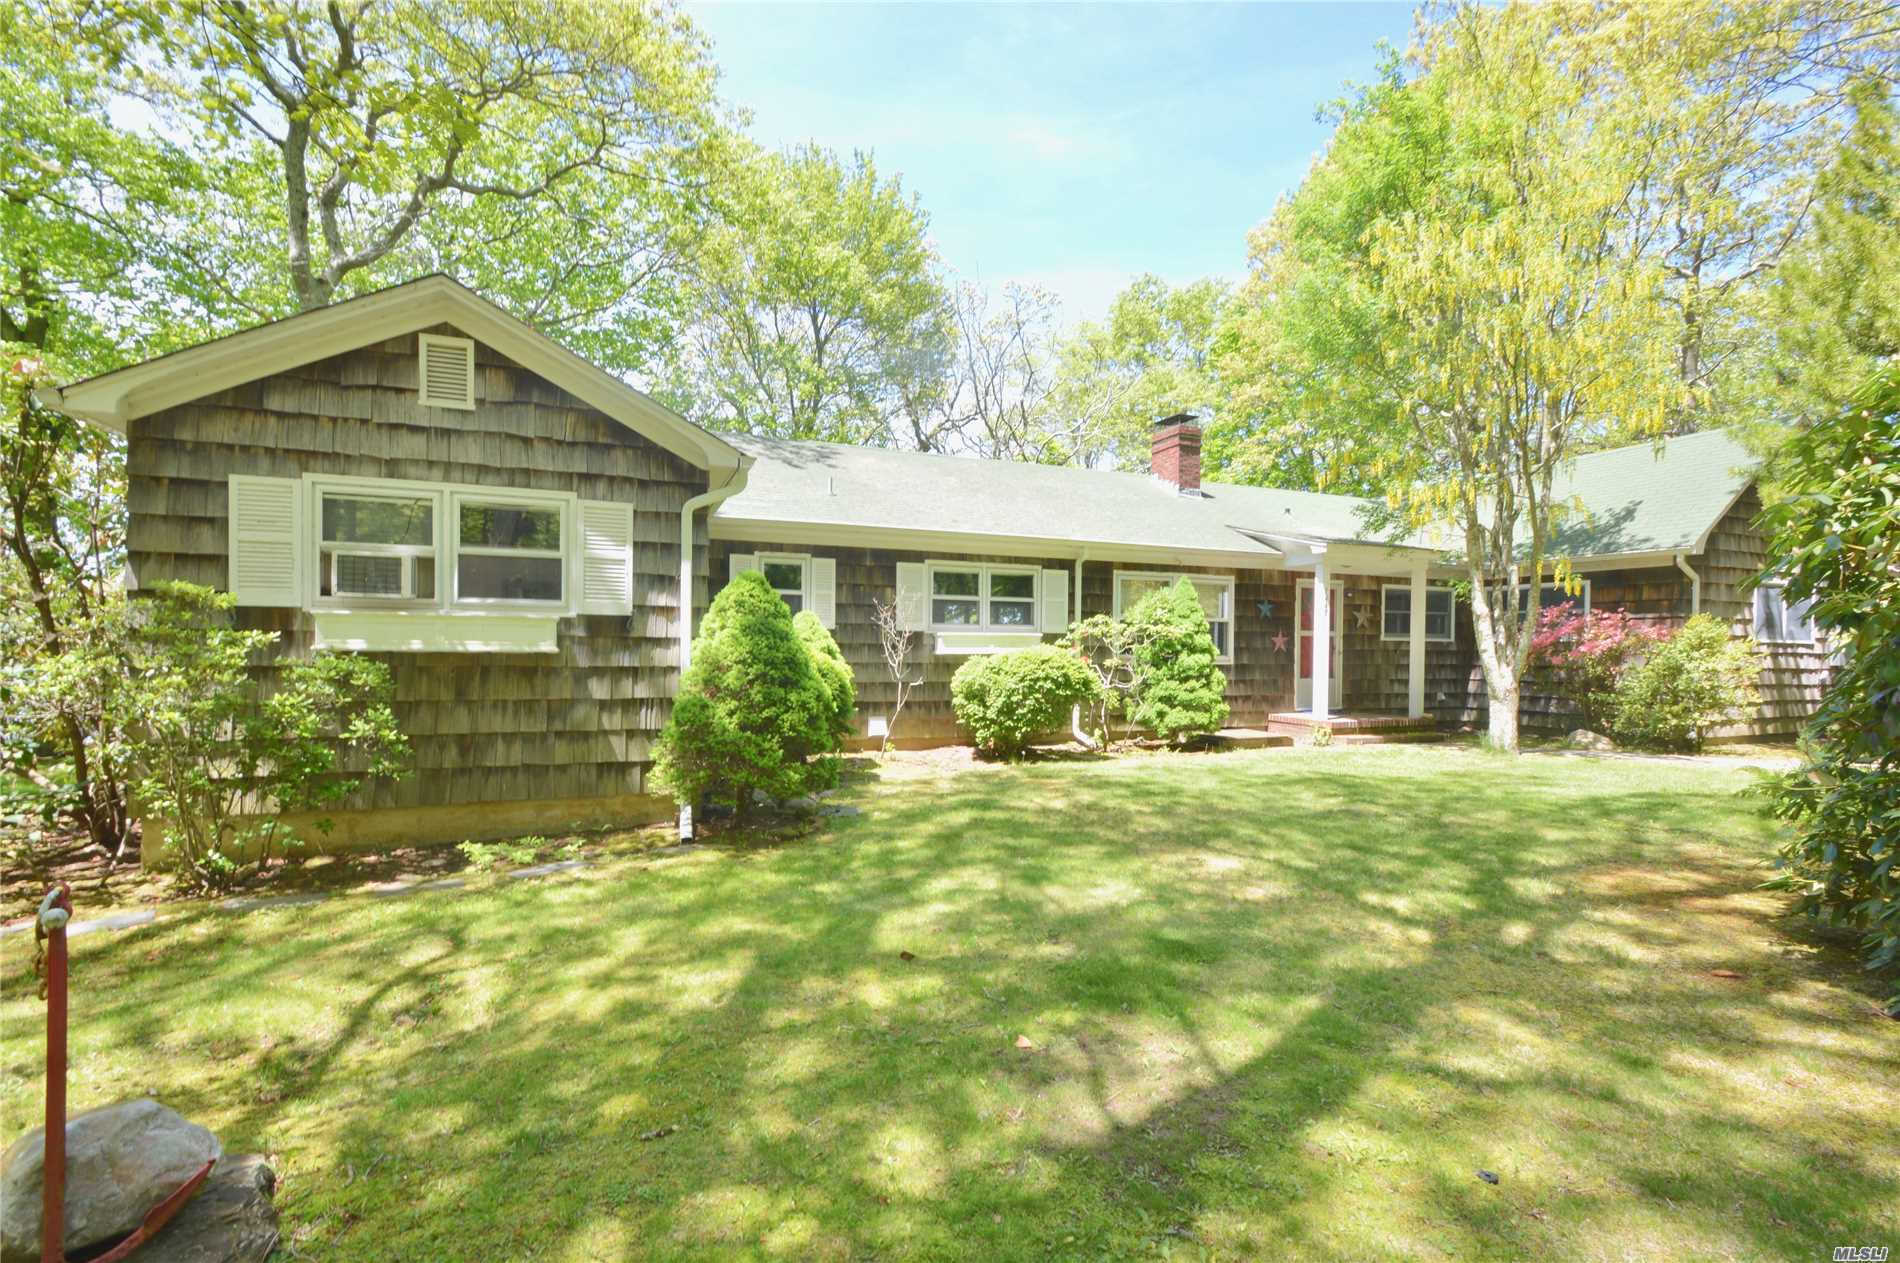 Picturesque & Tranquil, Near Historic Southold & Scenic Greenport - North Fork Living At Its Best! 1/2 Acre W/ Unobstructed Access To 212 Ft Of Great Pond, W/ 90 Ft Of Waterfront - Ideal For Freshwater Boating, Fishing, Swimming. Close To Kenny's Beach & Many Vineyards Close By. 3-Beds, 2-Baths, 2, 063 Sq Ft. Huge Living Room W/ Glass Doors To Large, Shaded Deck Overlooking Pond, Formal Dining Room, Den W/ Wood Burning Fireplace Open To Eat In Kitchen. All Rooms W/ Sweeping Pond Views.